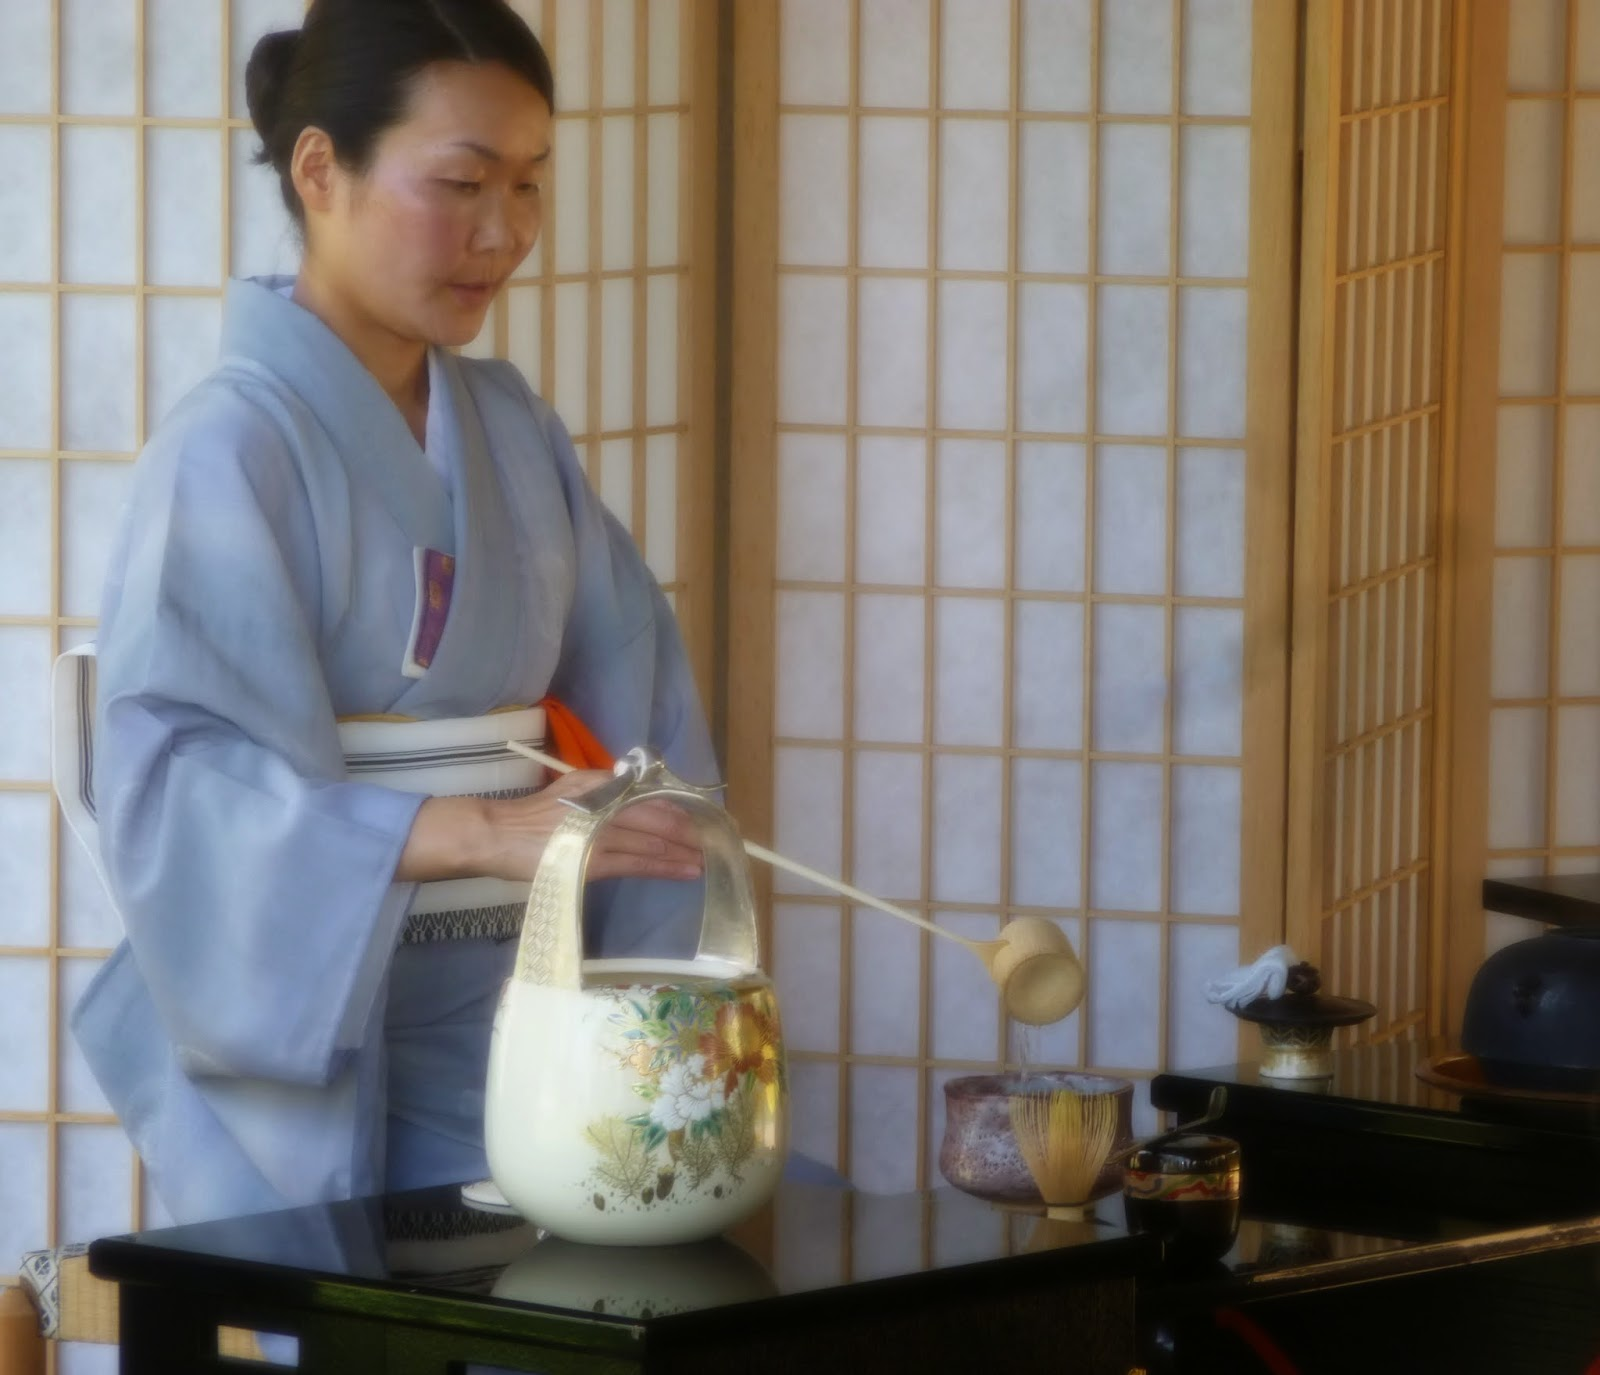 the study of zen in the japanese tea ceremony The japanese tea ceremony originated with what religious sect a pure land buddhism b christianity c zen buddhism d nicheren buddhism e shinto.